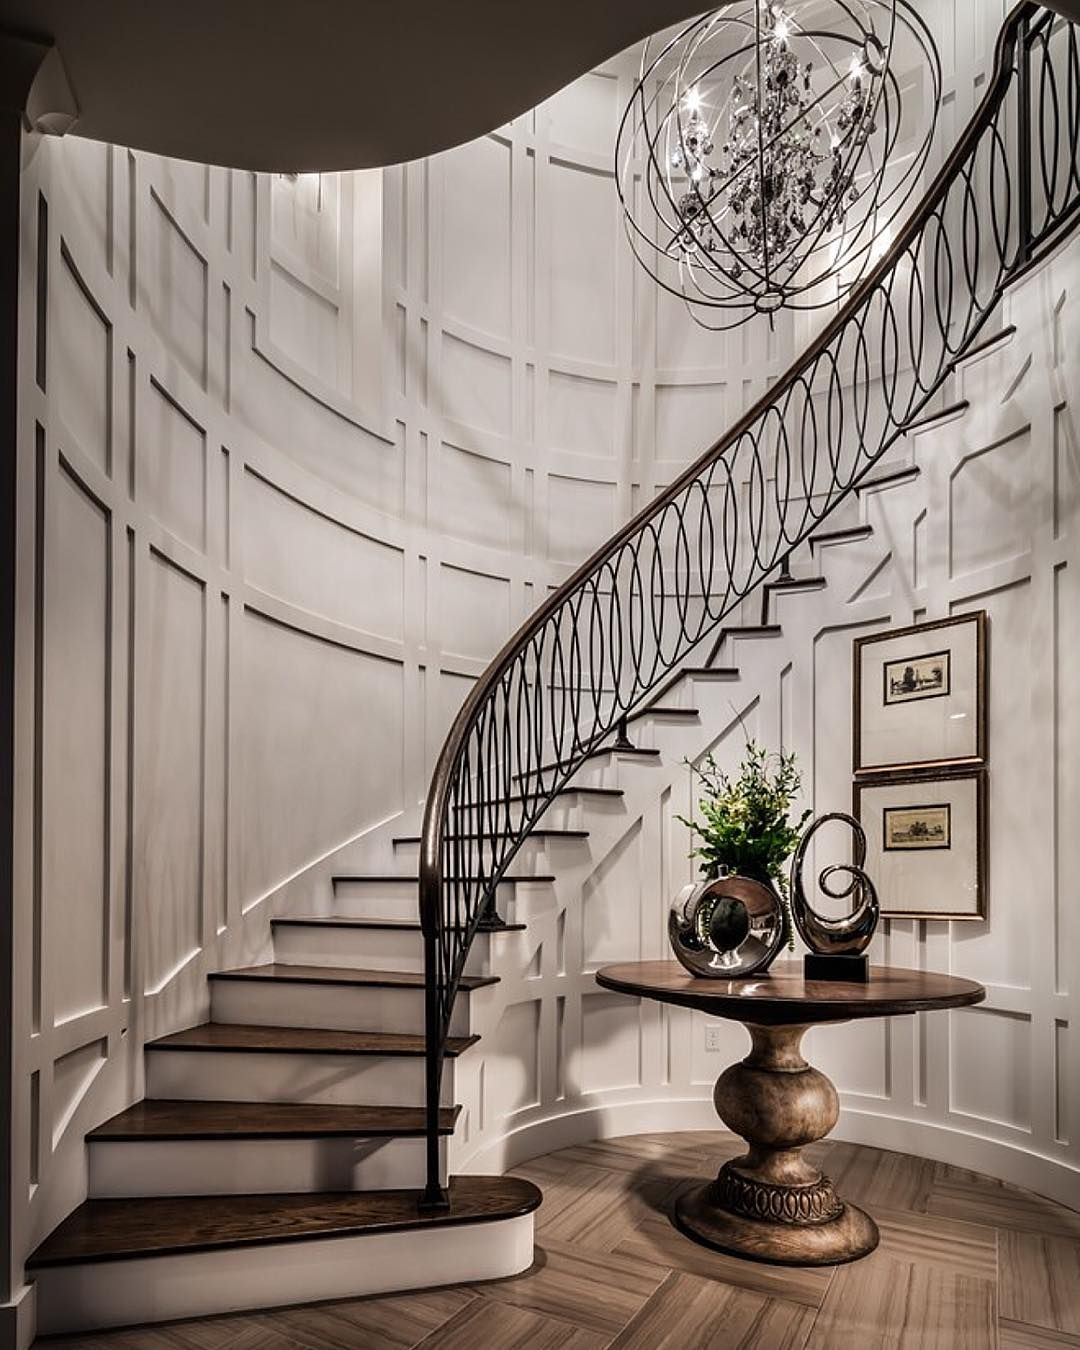 Interior Design On Instagram Very Impressive Staircase By Toll